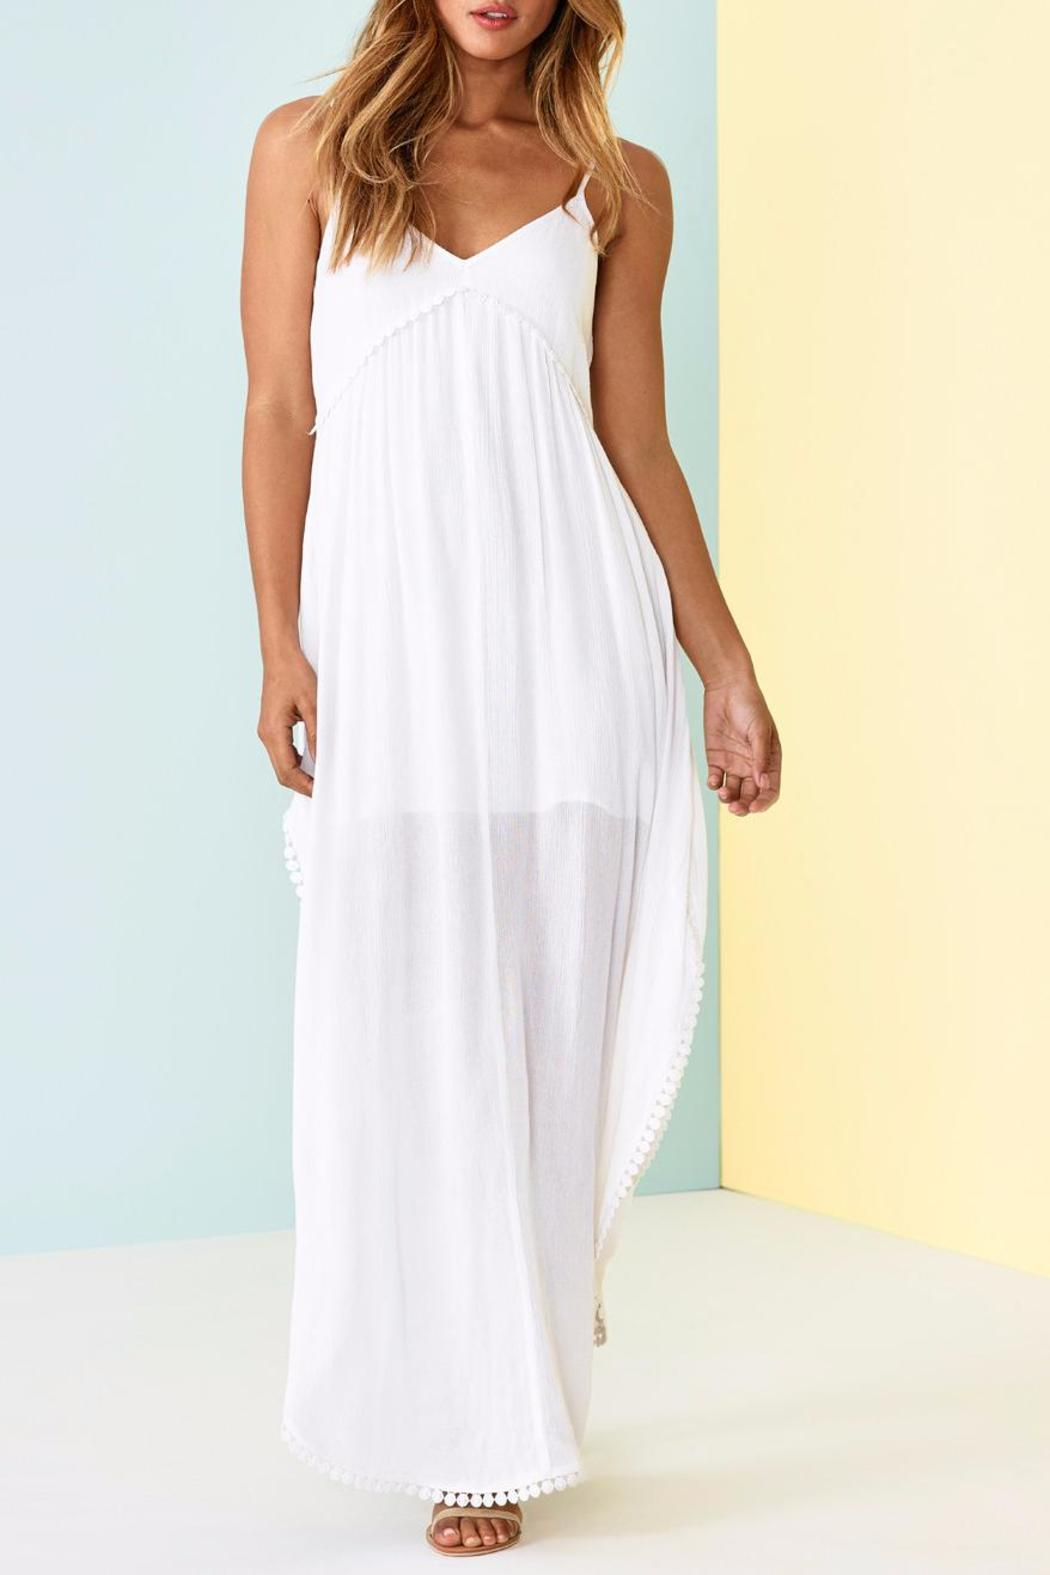 Lovers + Friends Curacao Slip Dress from Florida by LoveRich ... 4174b0d04